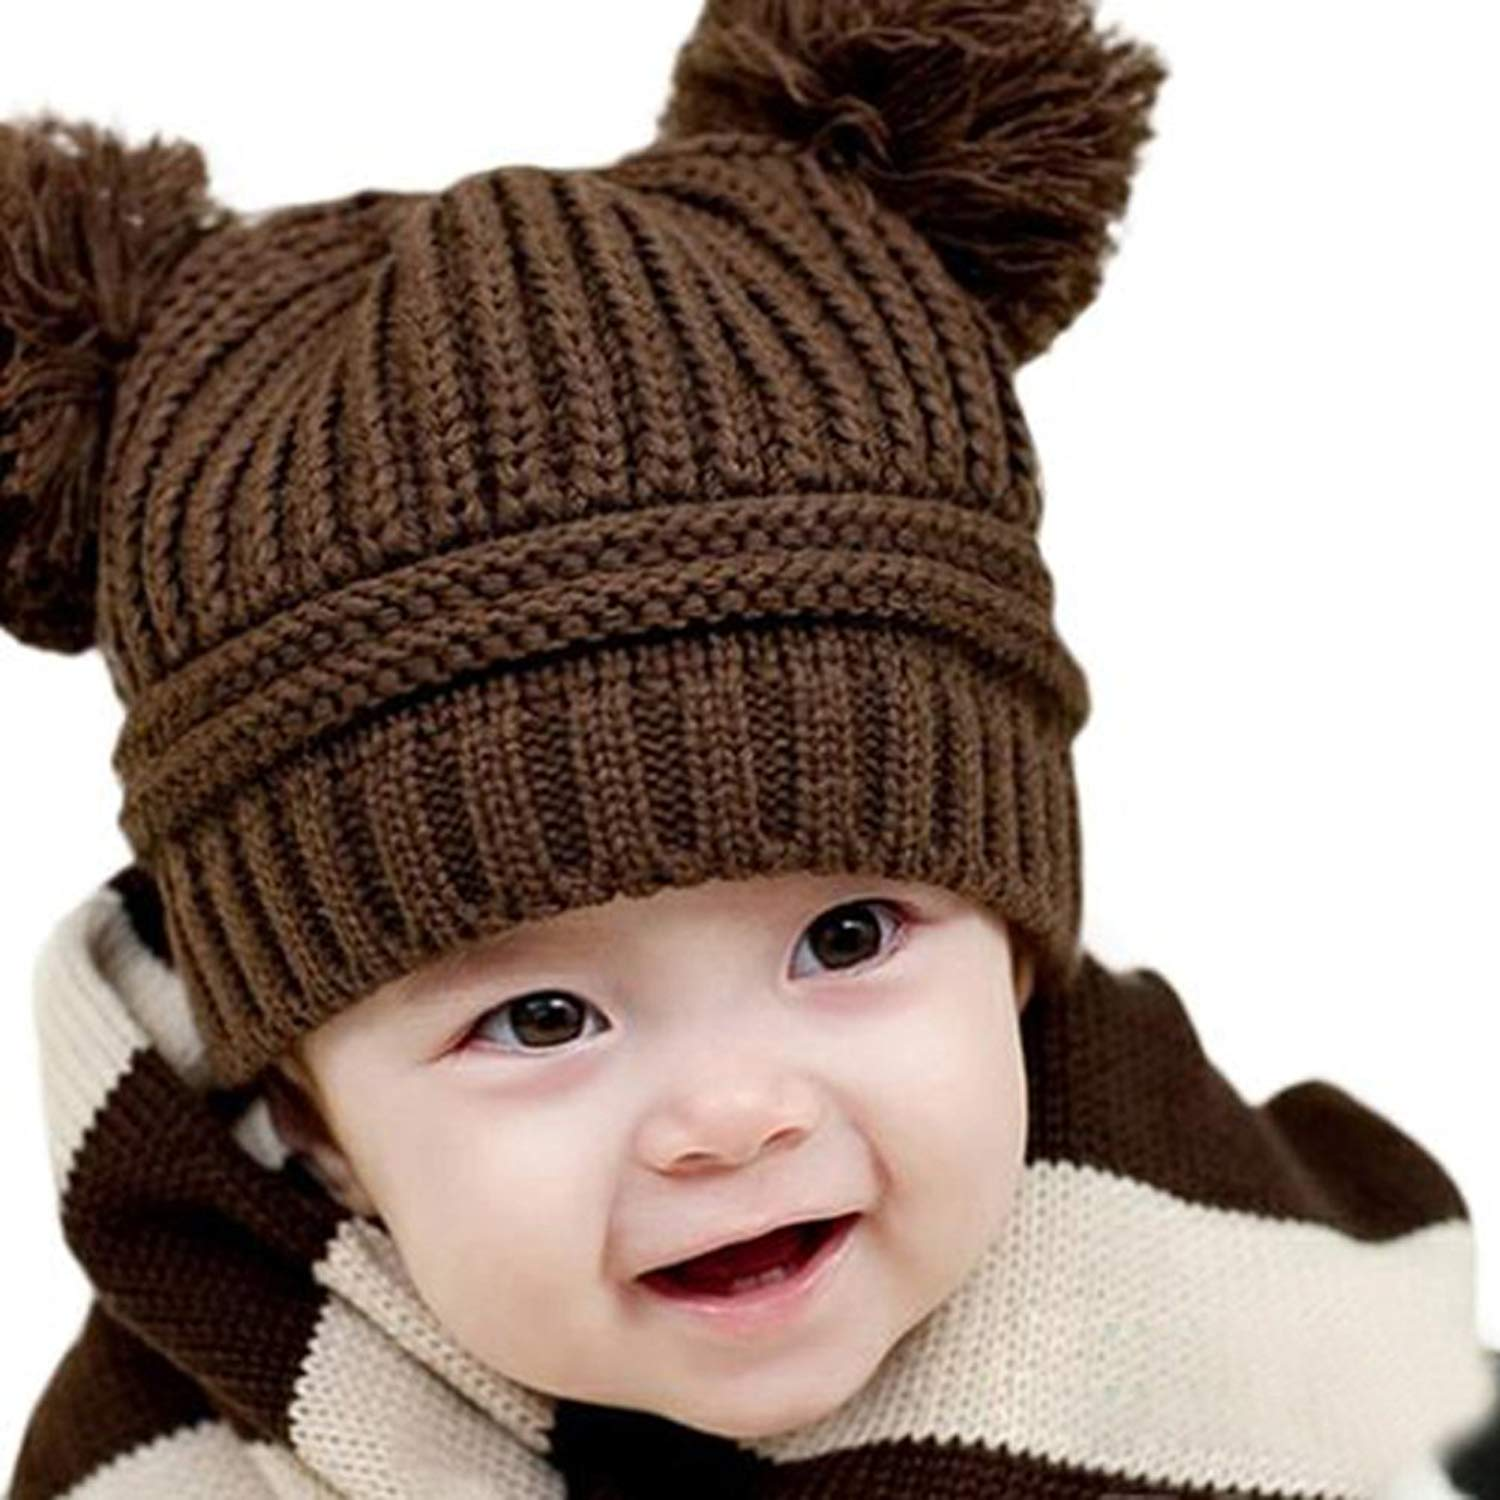 Girl's Hats Smart Cute Baby Winter Hat Warm Child Beanie Cap Animal Cat Ear Kids Crochet Knitted Hat For Children Boys Girls Hot New 100% Guarantee Girl's Accessories